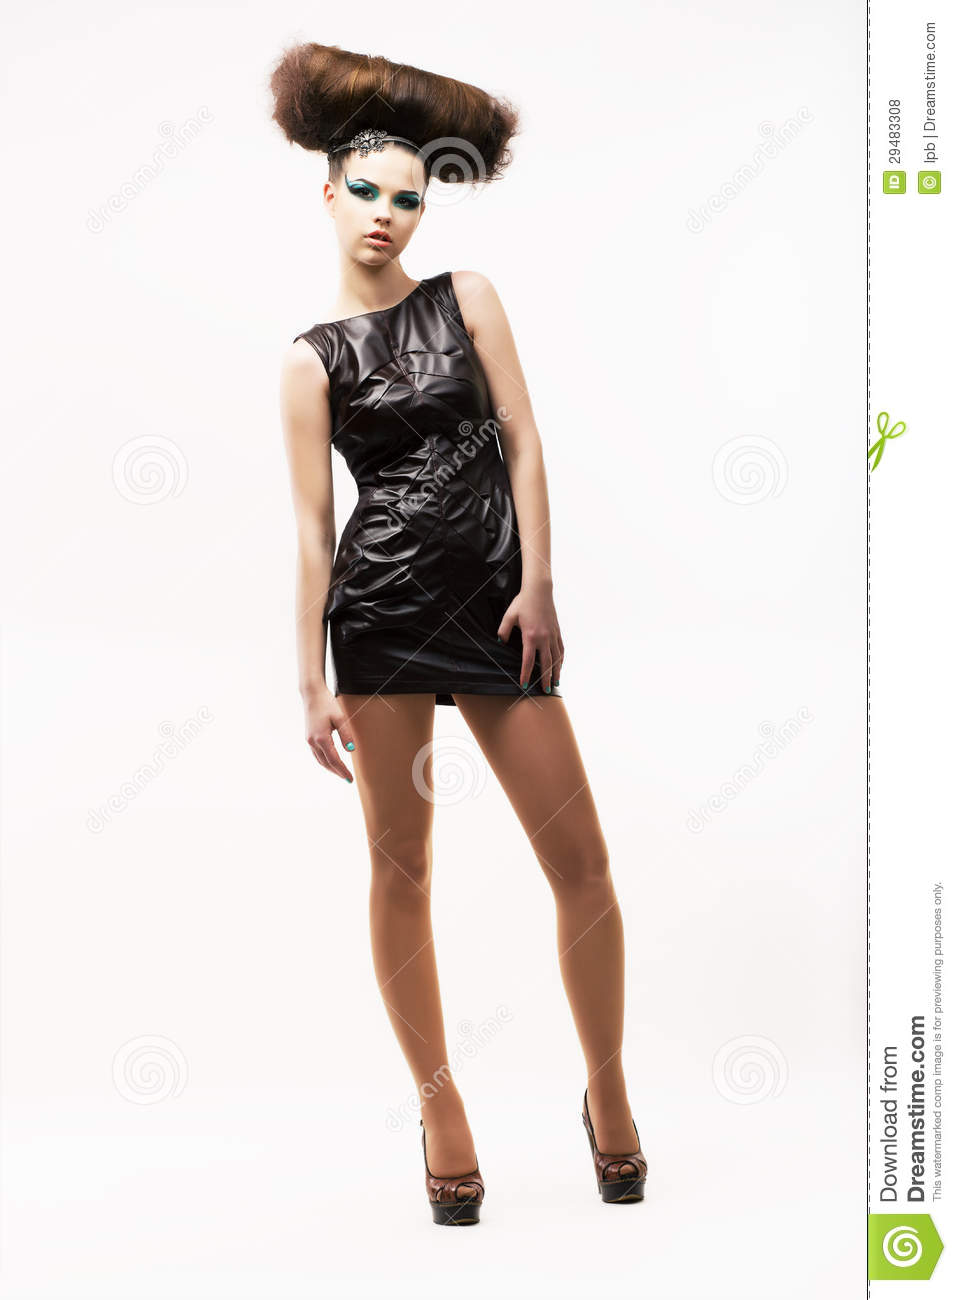 Individuality Exquisite Modern Woman Standing In Black Trendy Dress Fashion Style Stock Photo